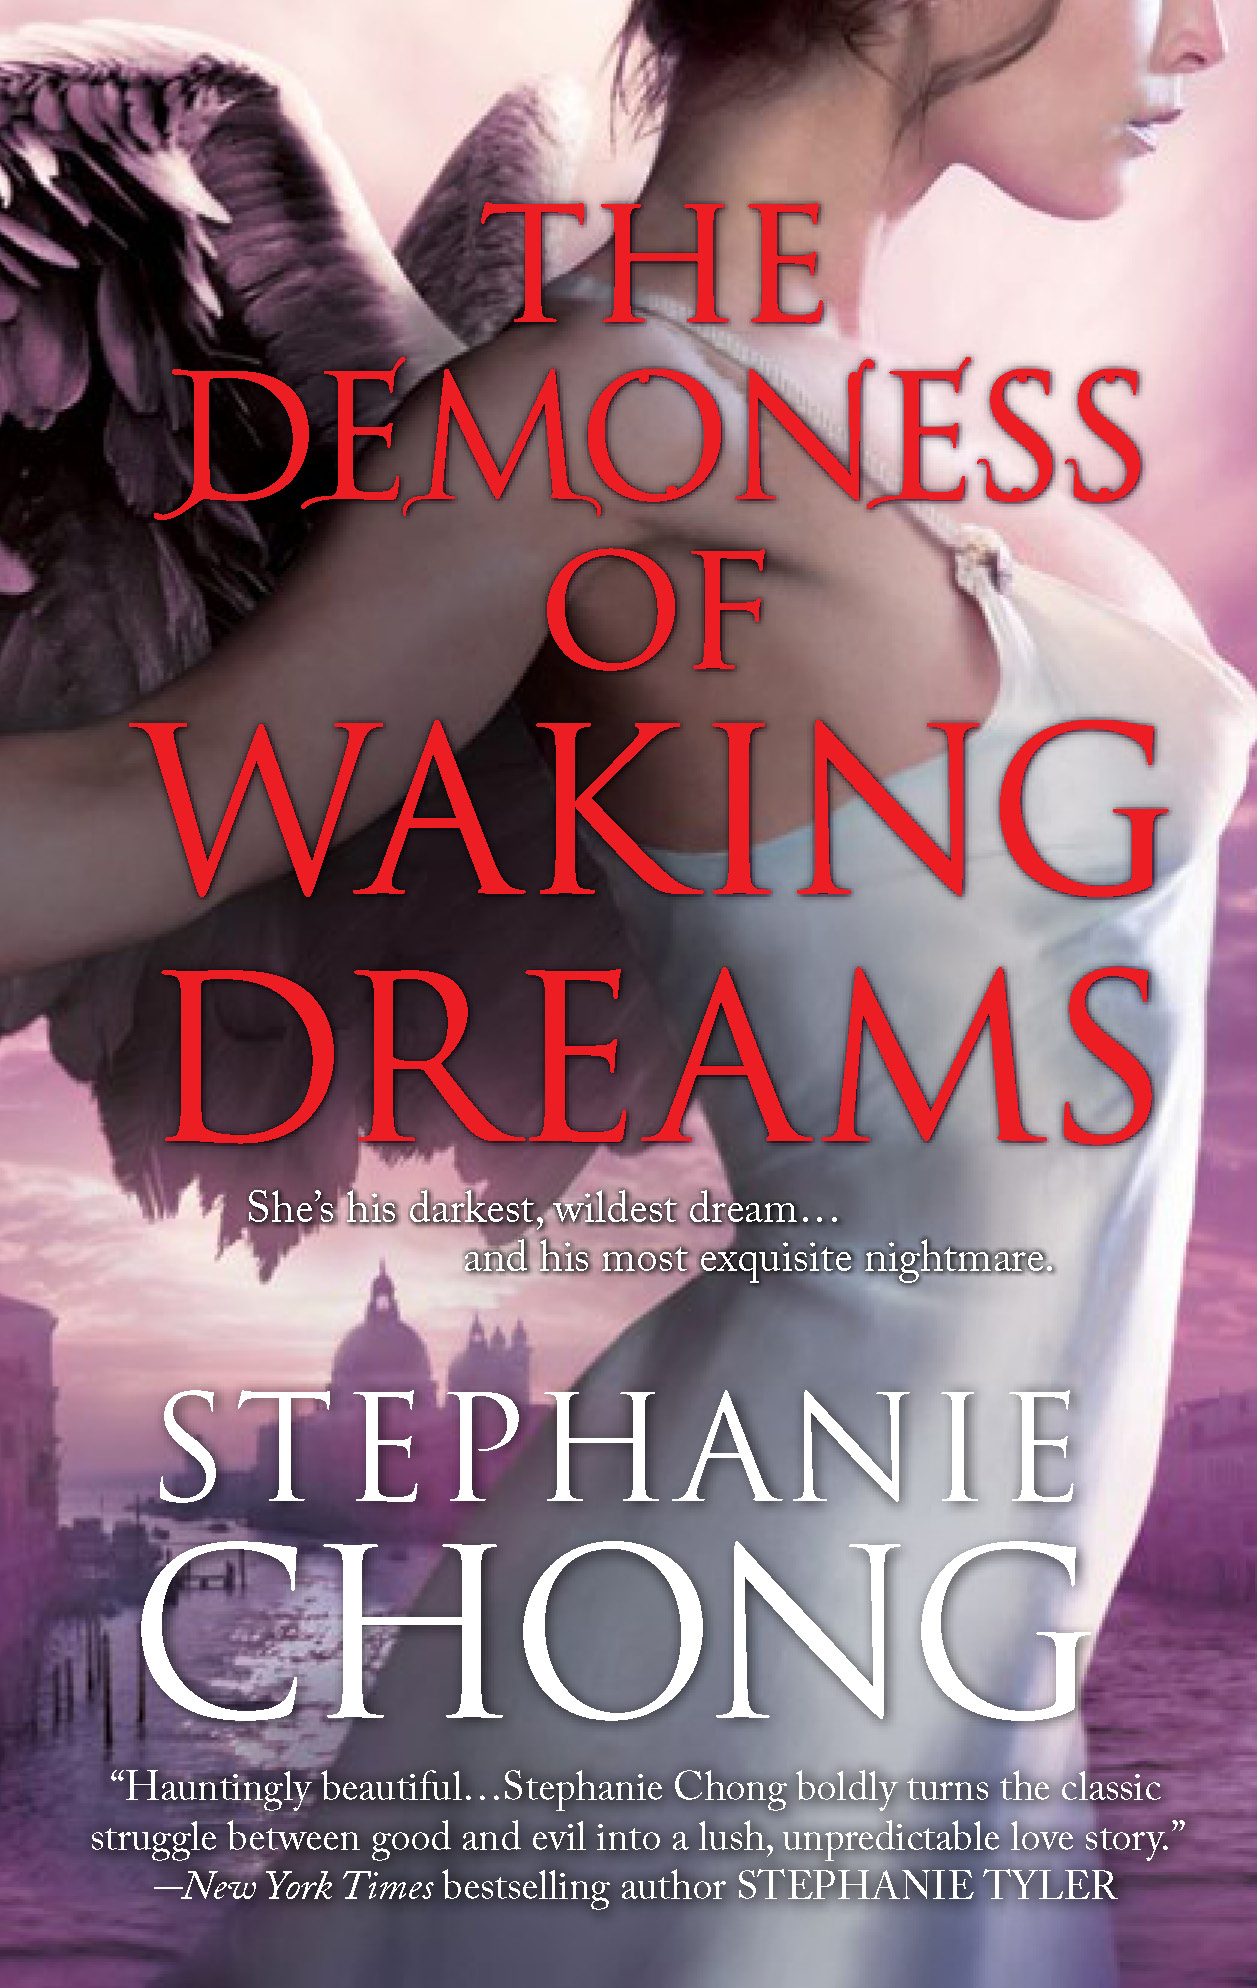 The Demoness of Waking Dreams By: Stephanie Chong